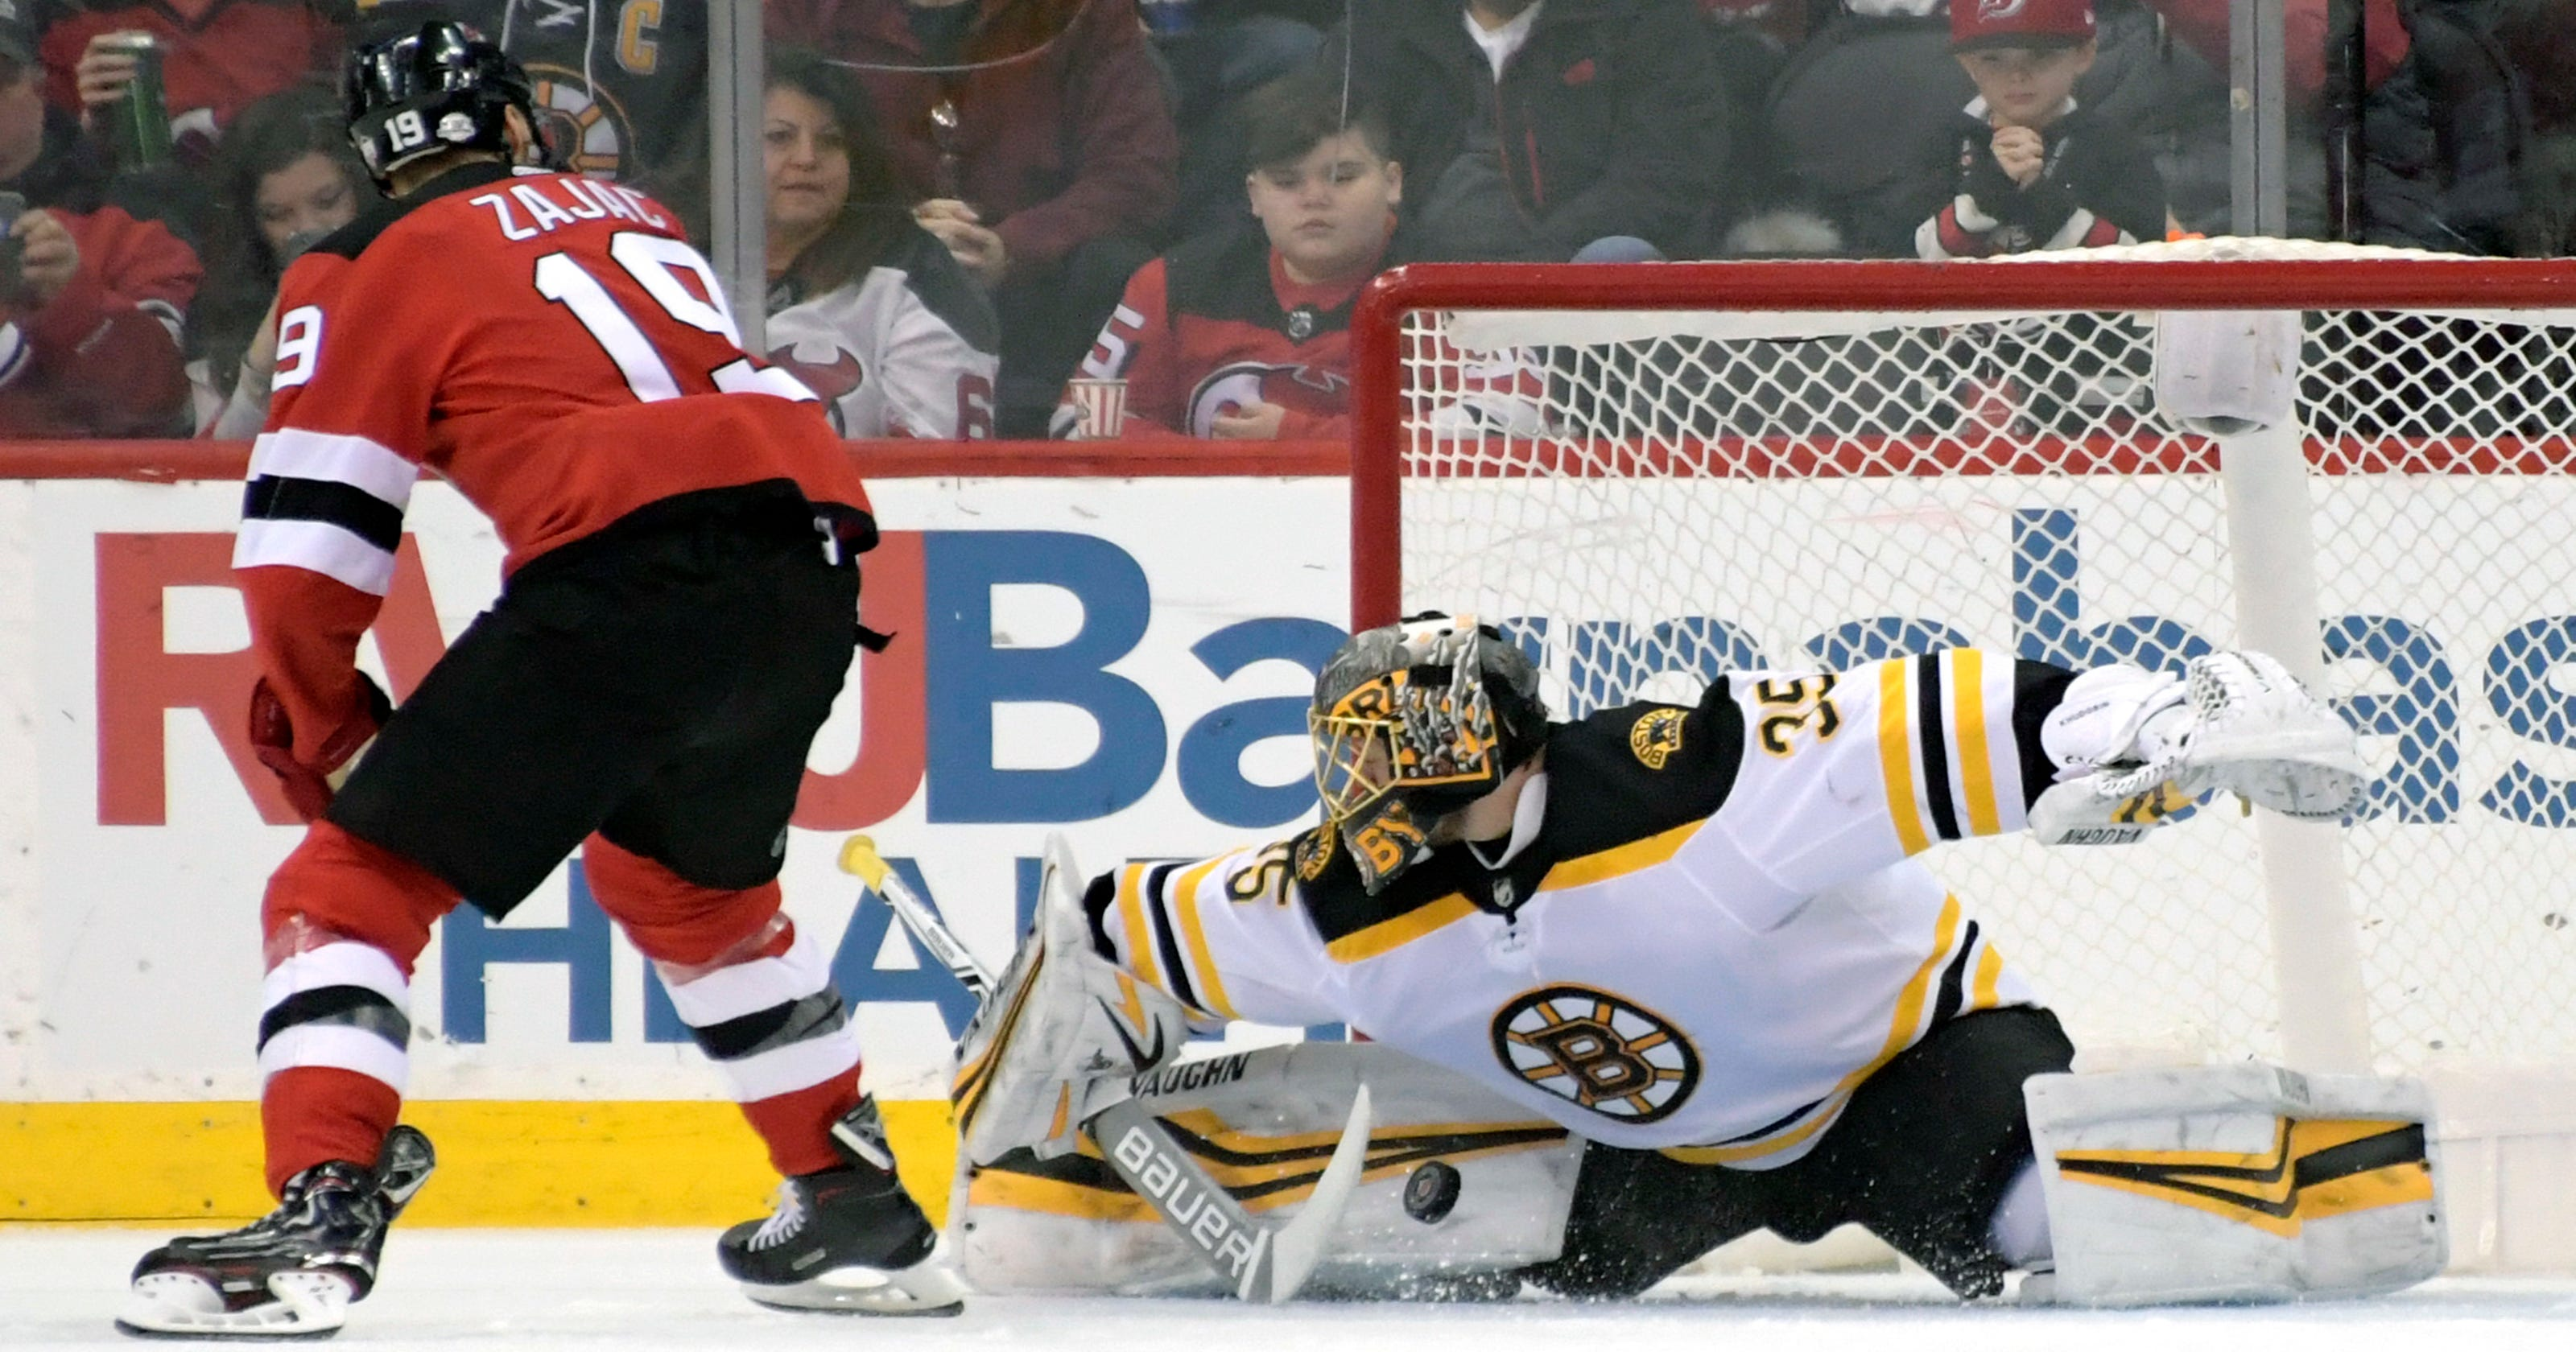 af97f4db343 McQuaid's first goal gives Bruins win over Devils